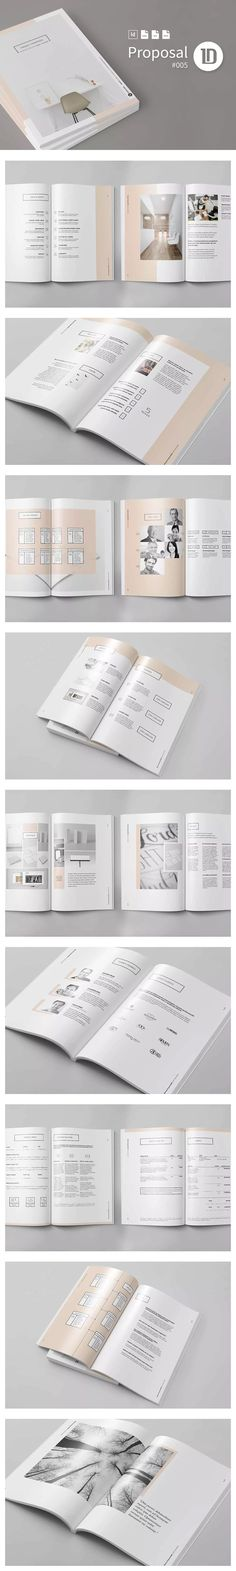 Black And White Proposal Project Template InDesign INDD - A4 And - marriage proposal template